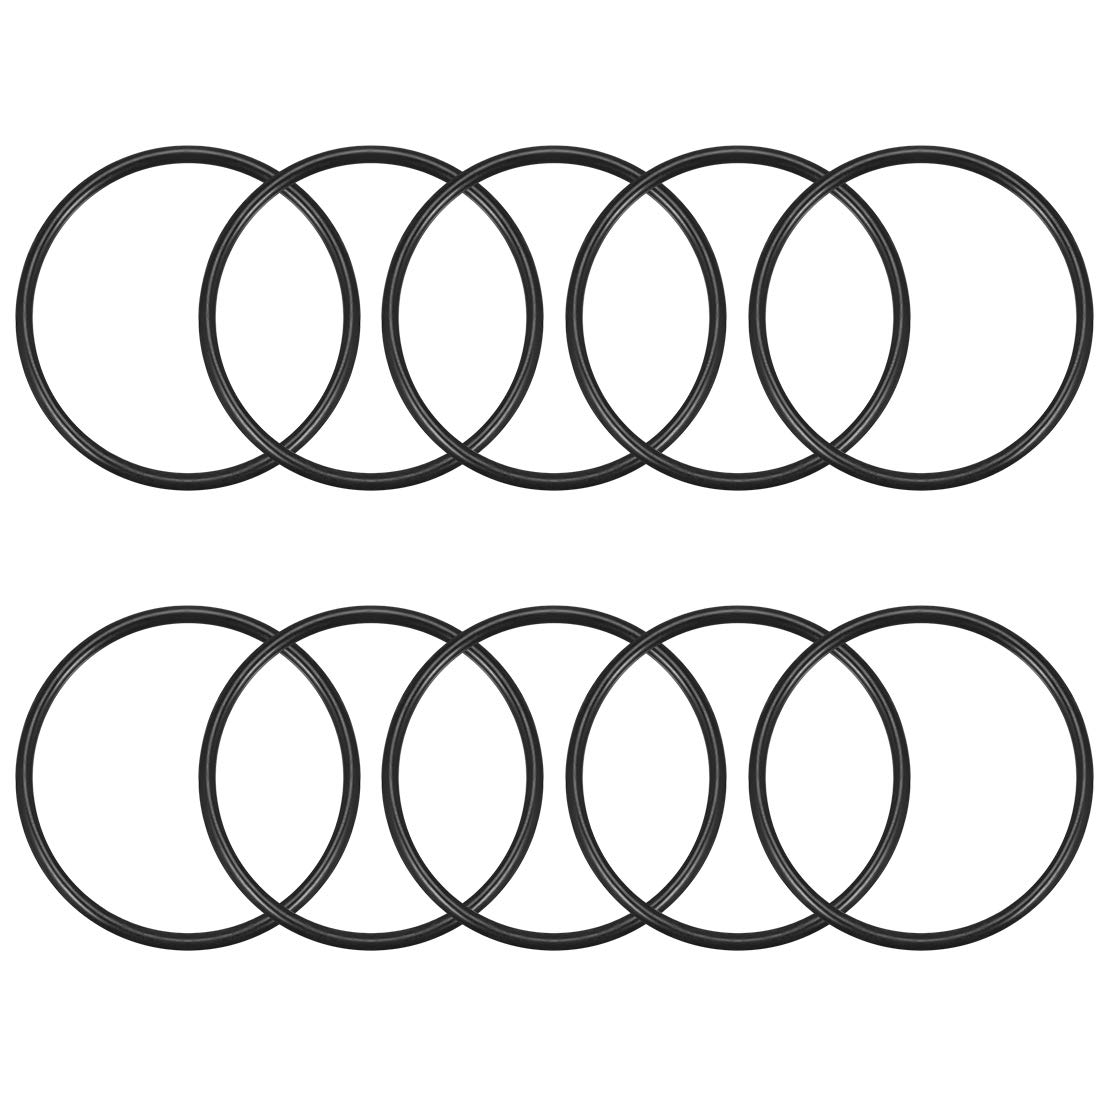 Pack of 10 uxcell O-Rings Nitrile Rubber 40mm OD 32mm Inner Diameter 4mm Width,Round Seal Gasket